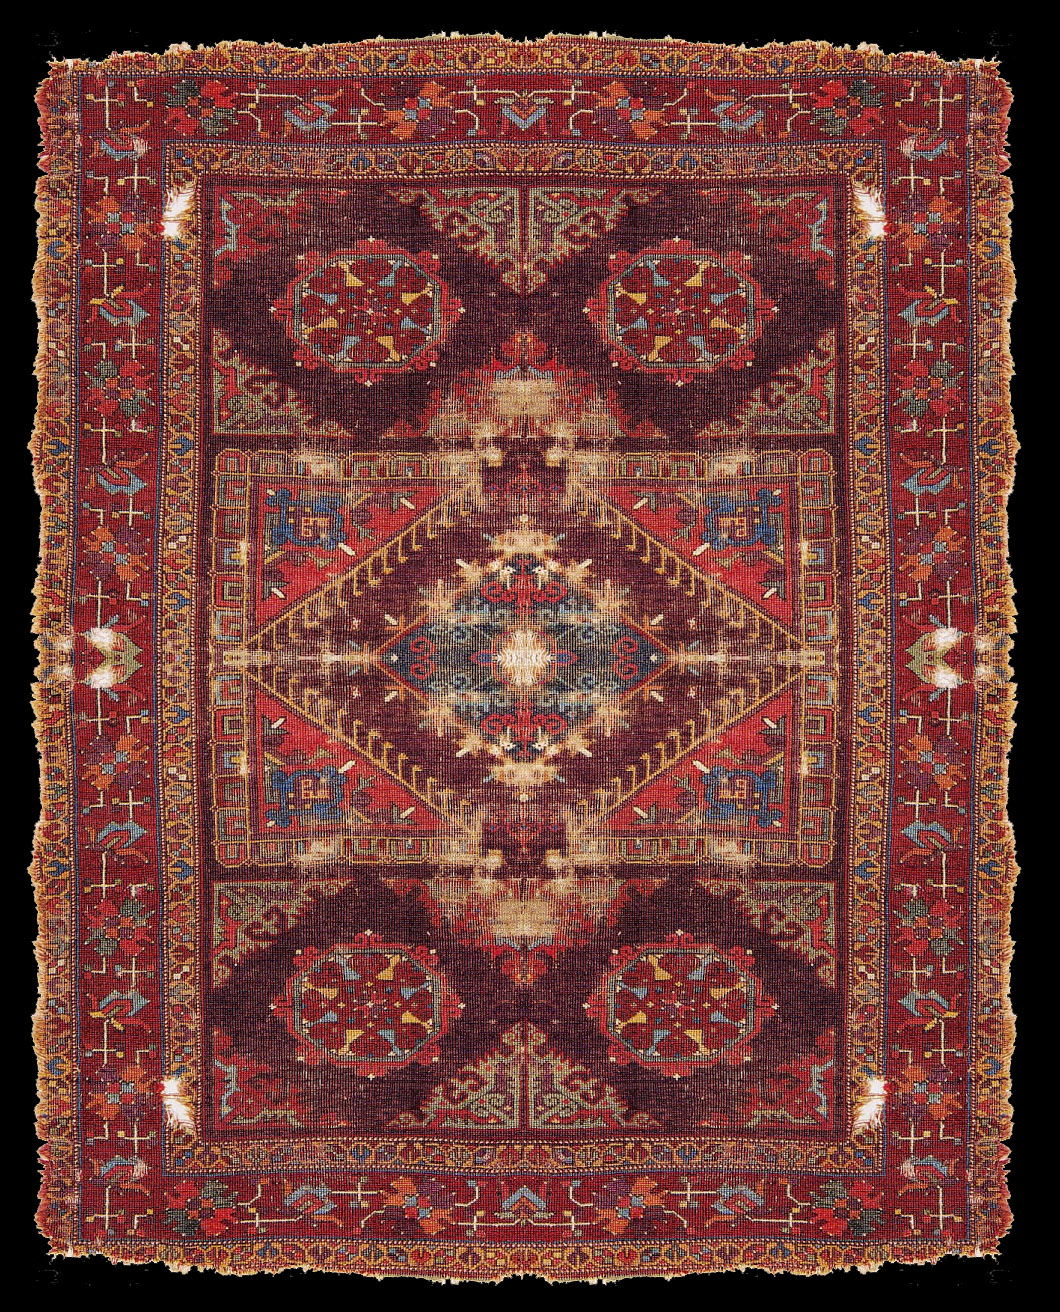 Early Central Anatolian Carpet ,17th century